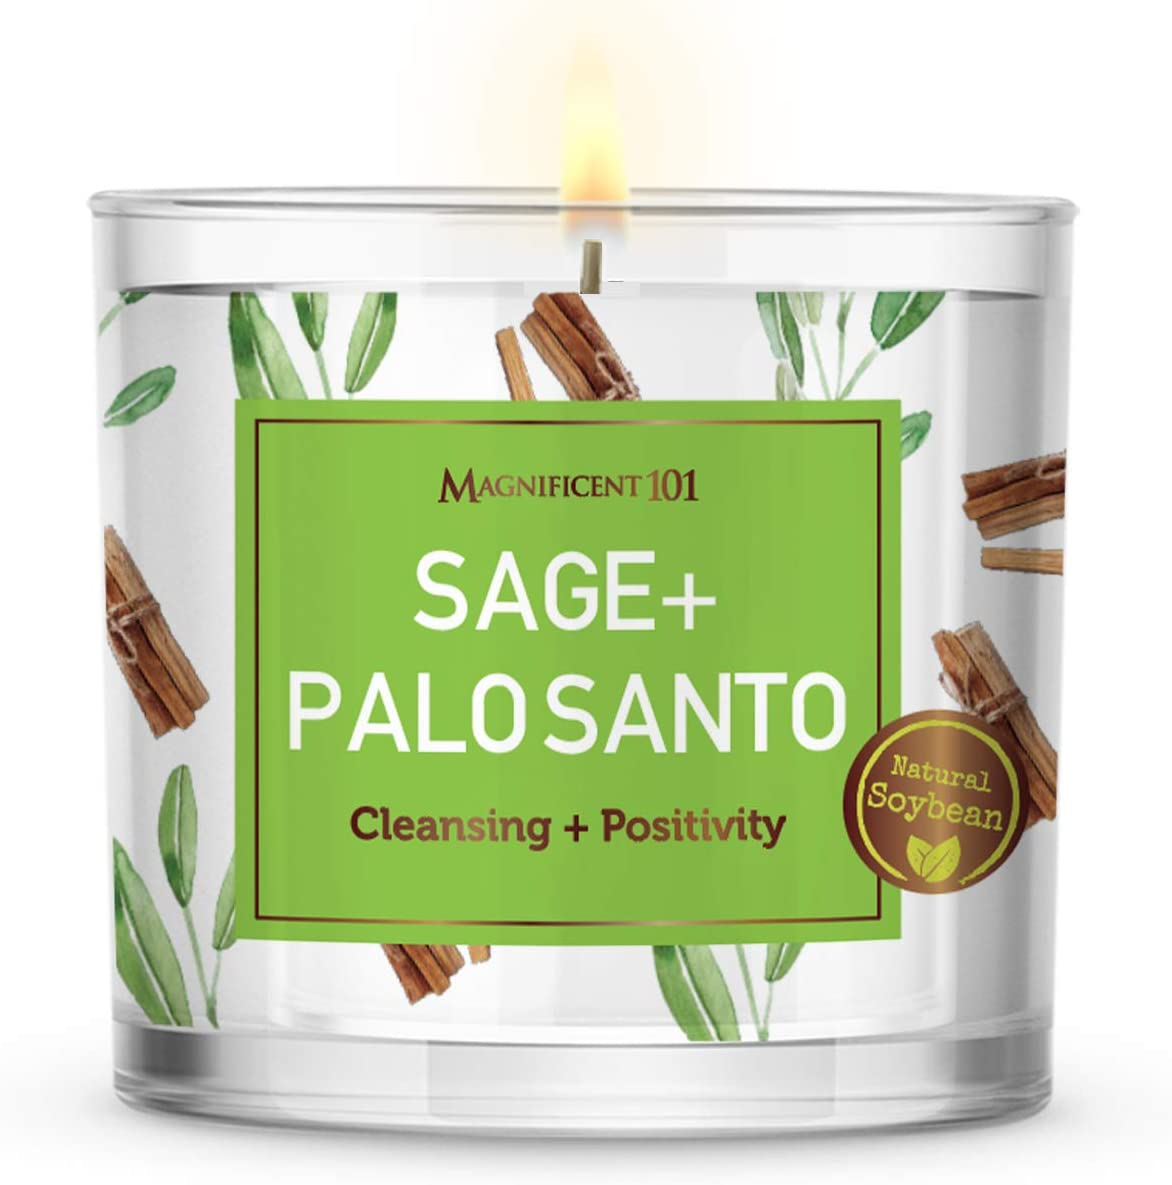 MAGNIFICENT 101 Large Sage + Palo Santo, Smudge Candle for House Energy Cleansing, Banishes Negative Energy I Purification and Chakra Healing - Natural Soy Wax Tin Candle for Aromatherapy (14oz)